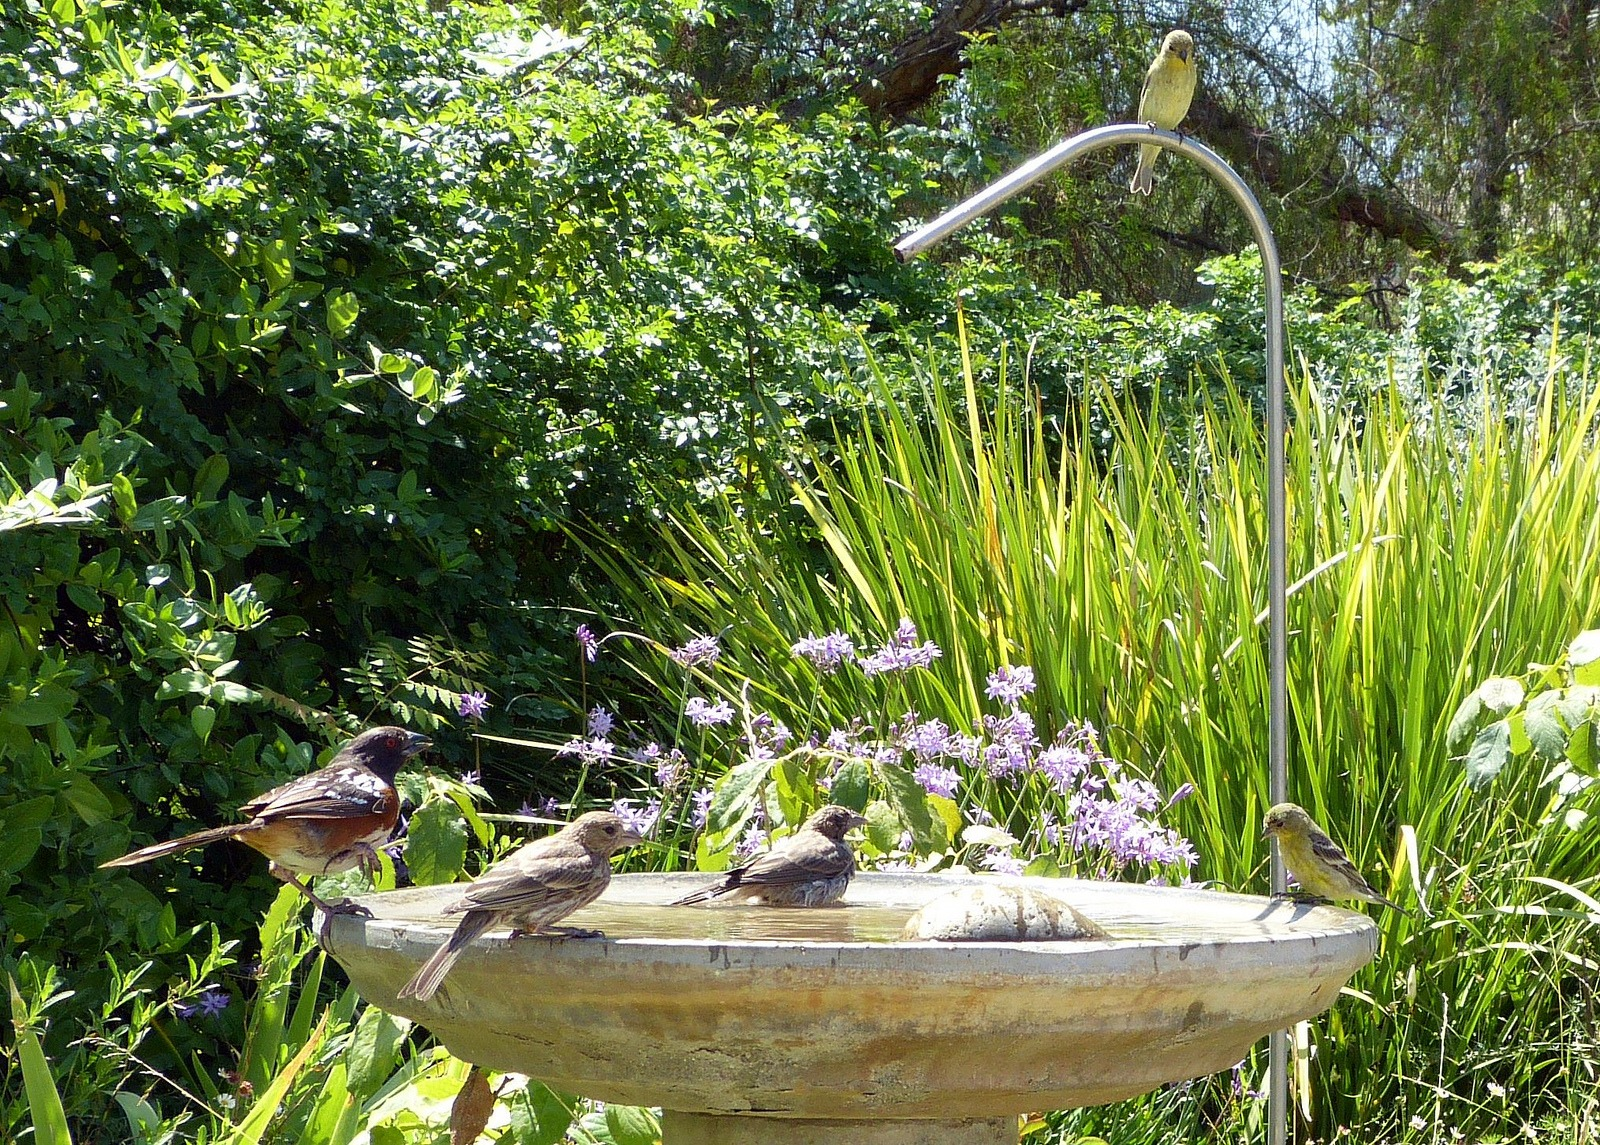 Leave water for pollinators in the garden